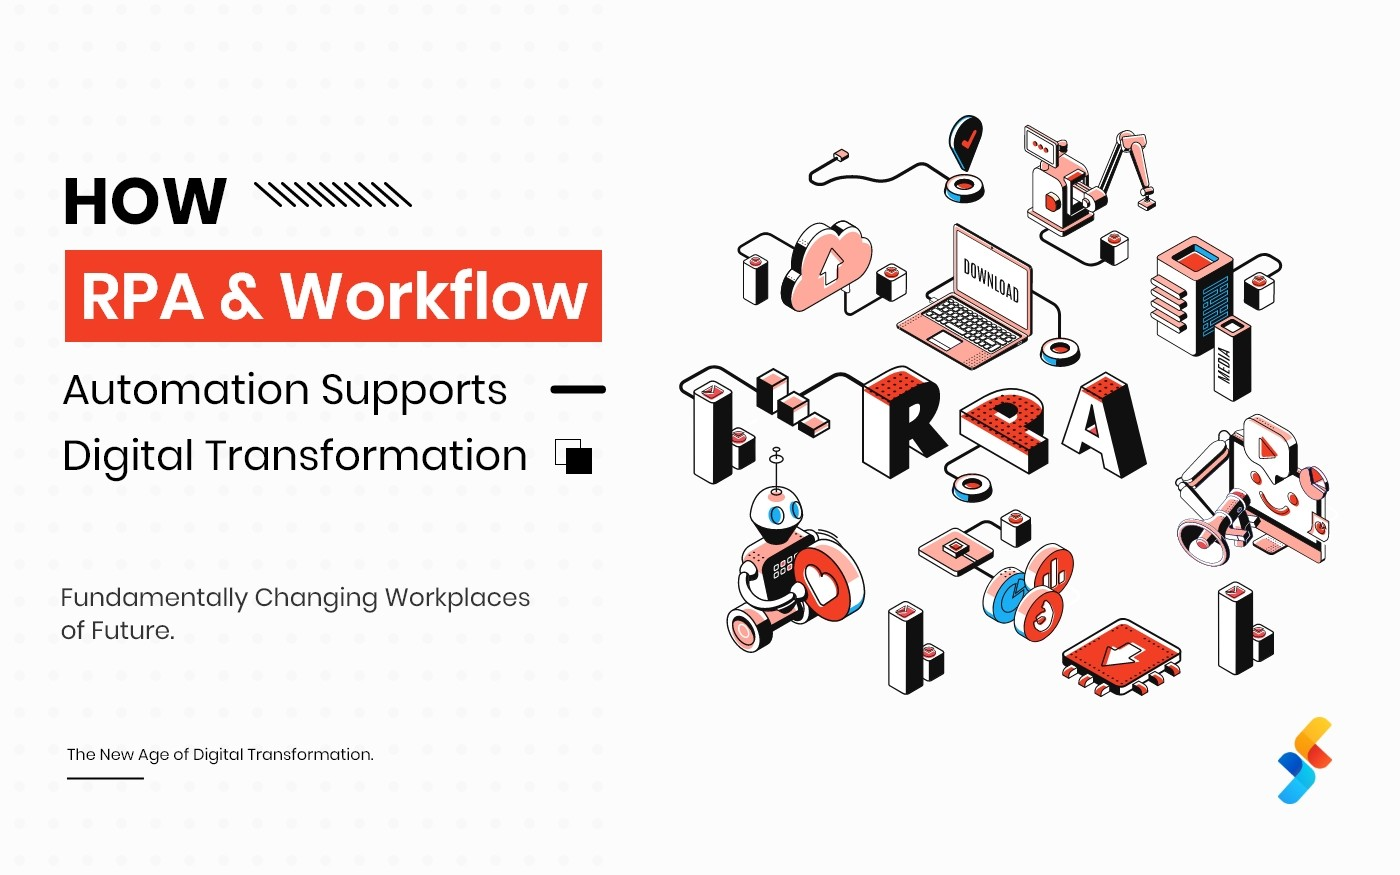 RPA and Workflow Automation